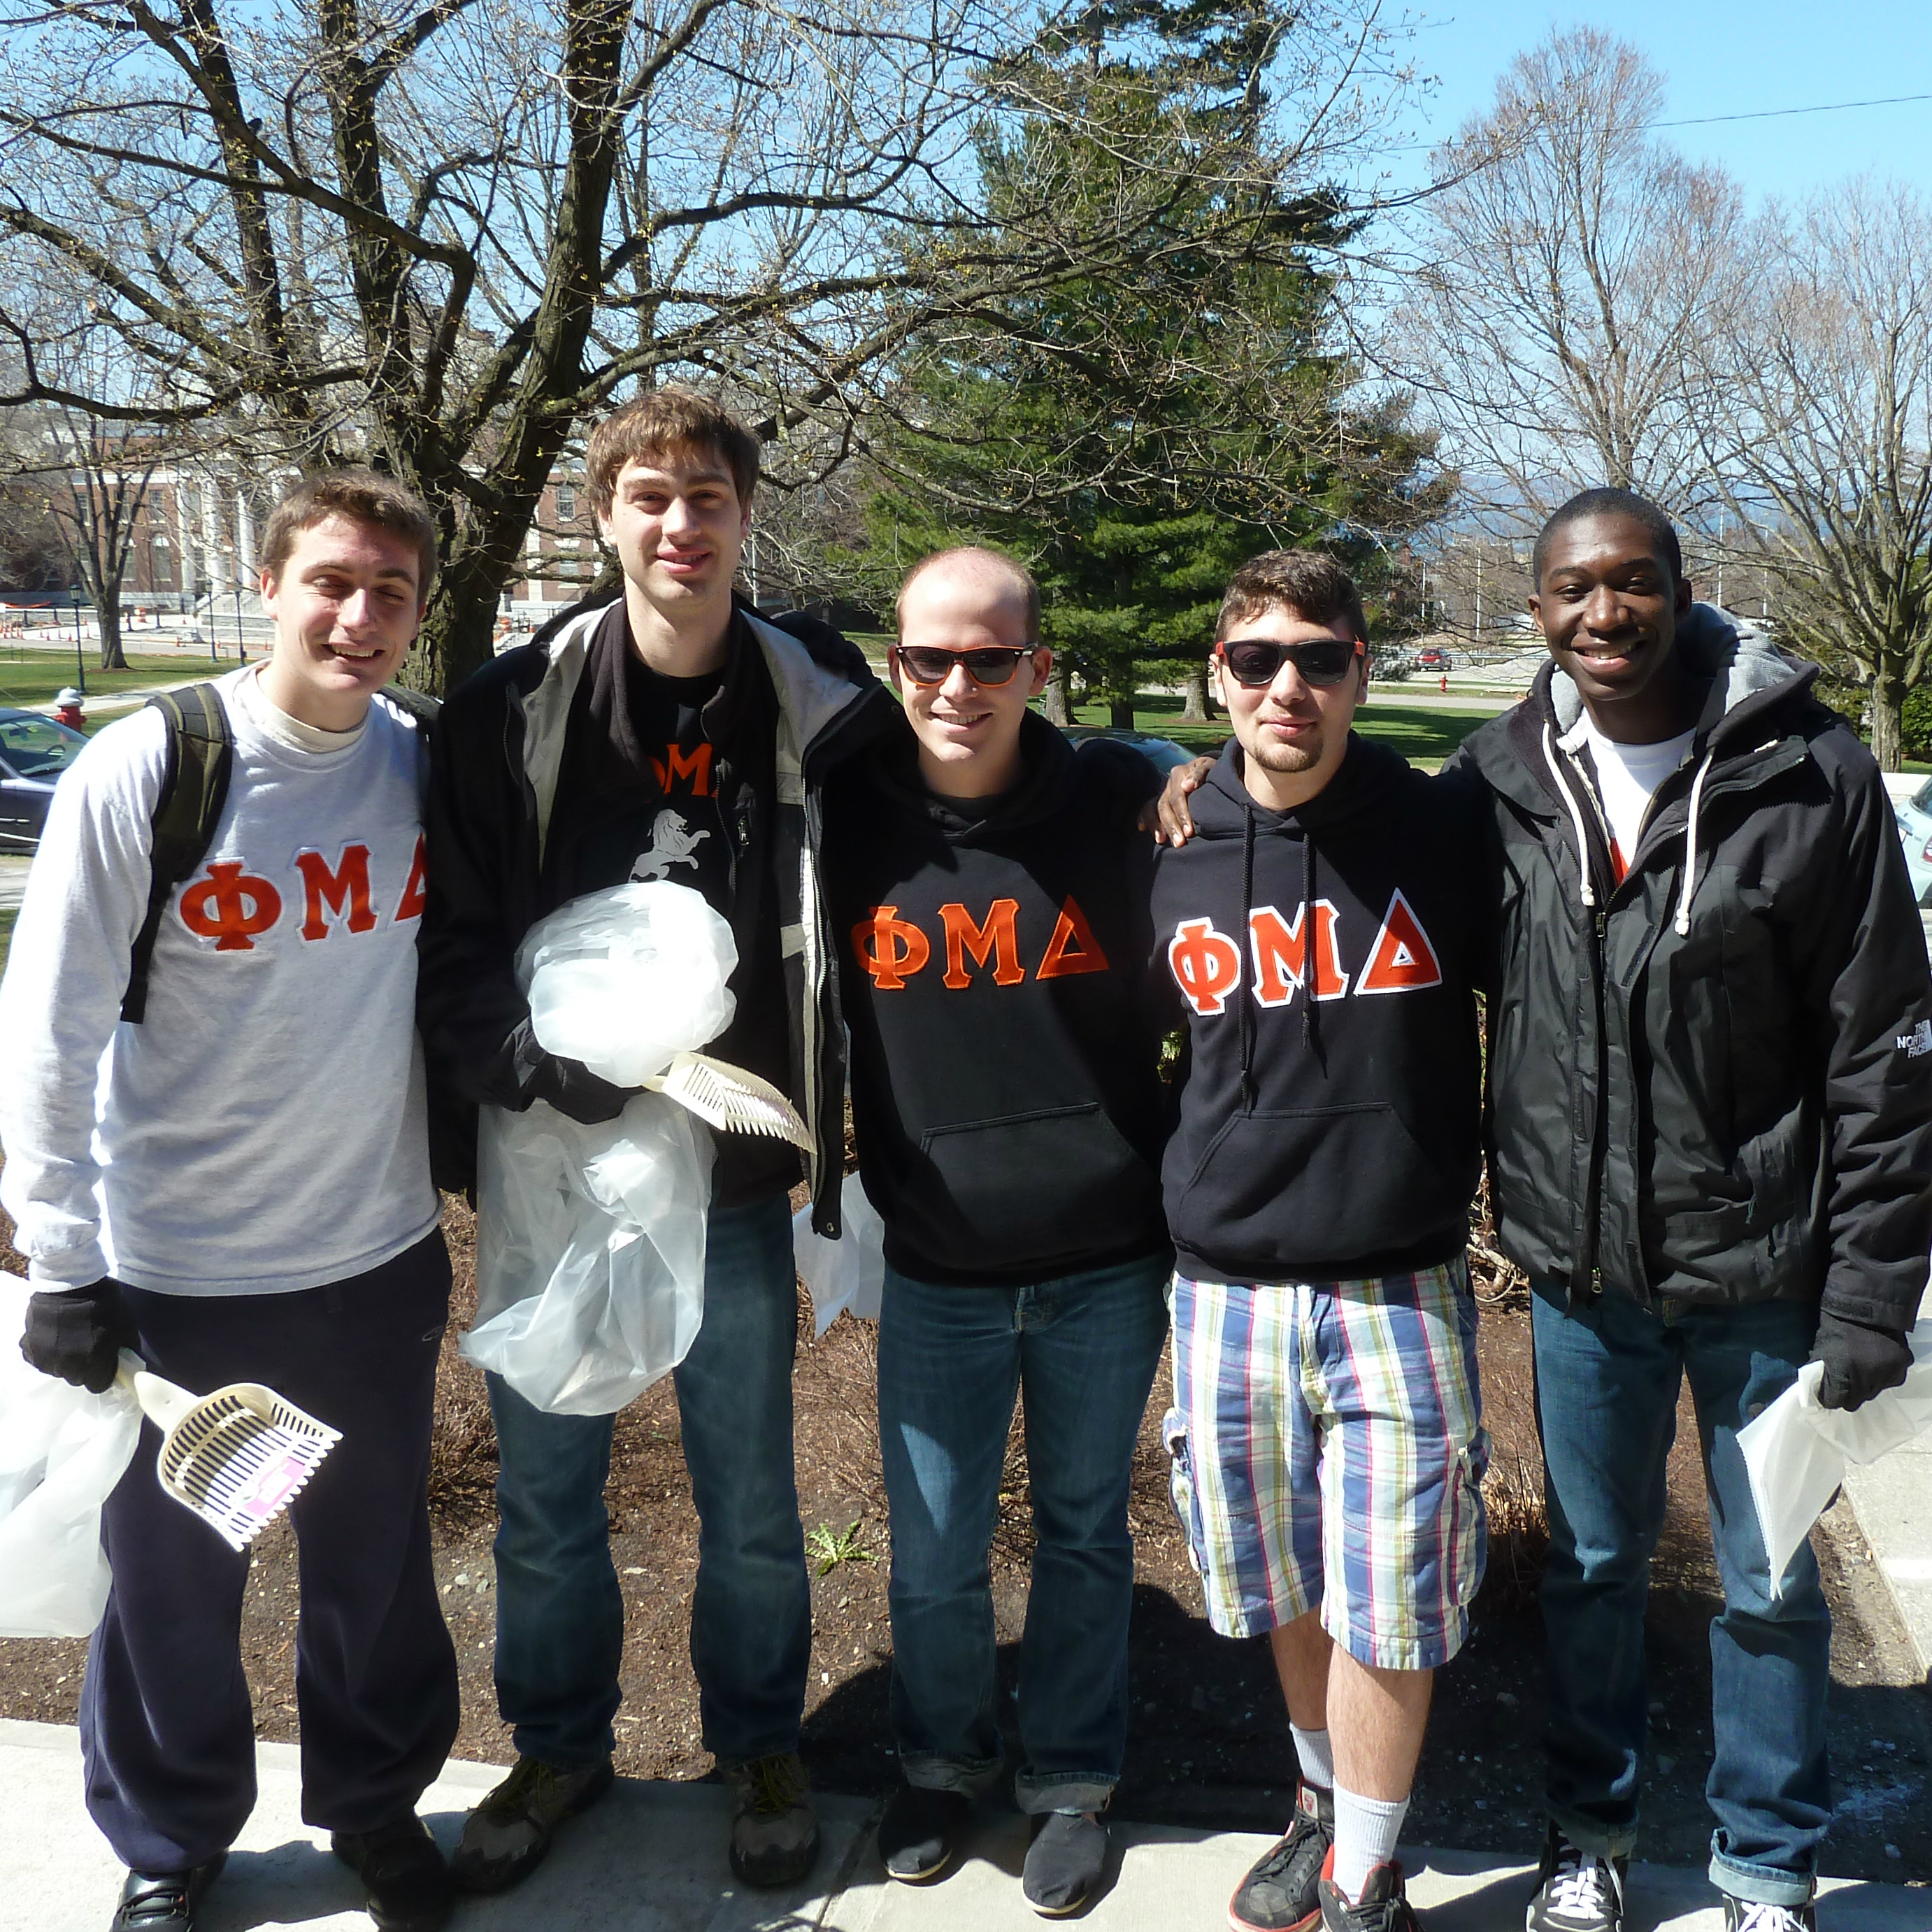 Members of UVM Fraternity and Sorority life doing a community clean-up